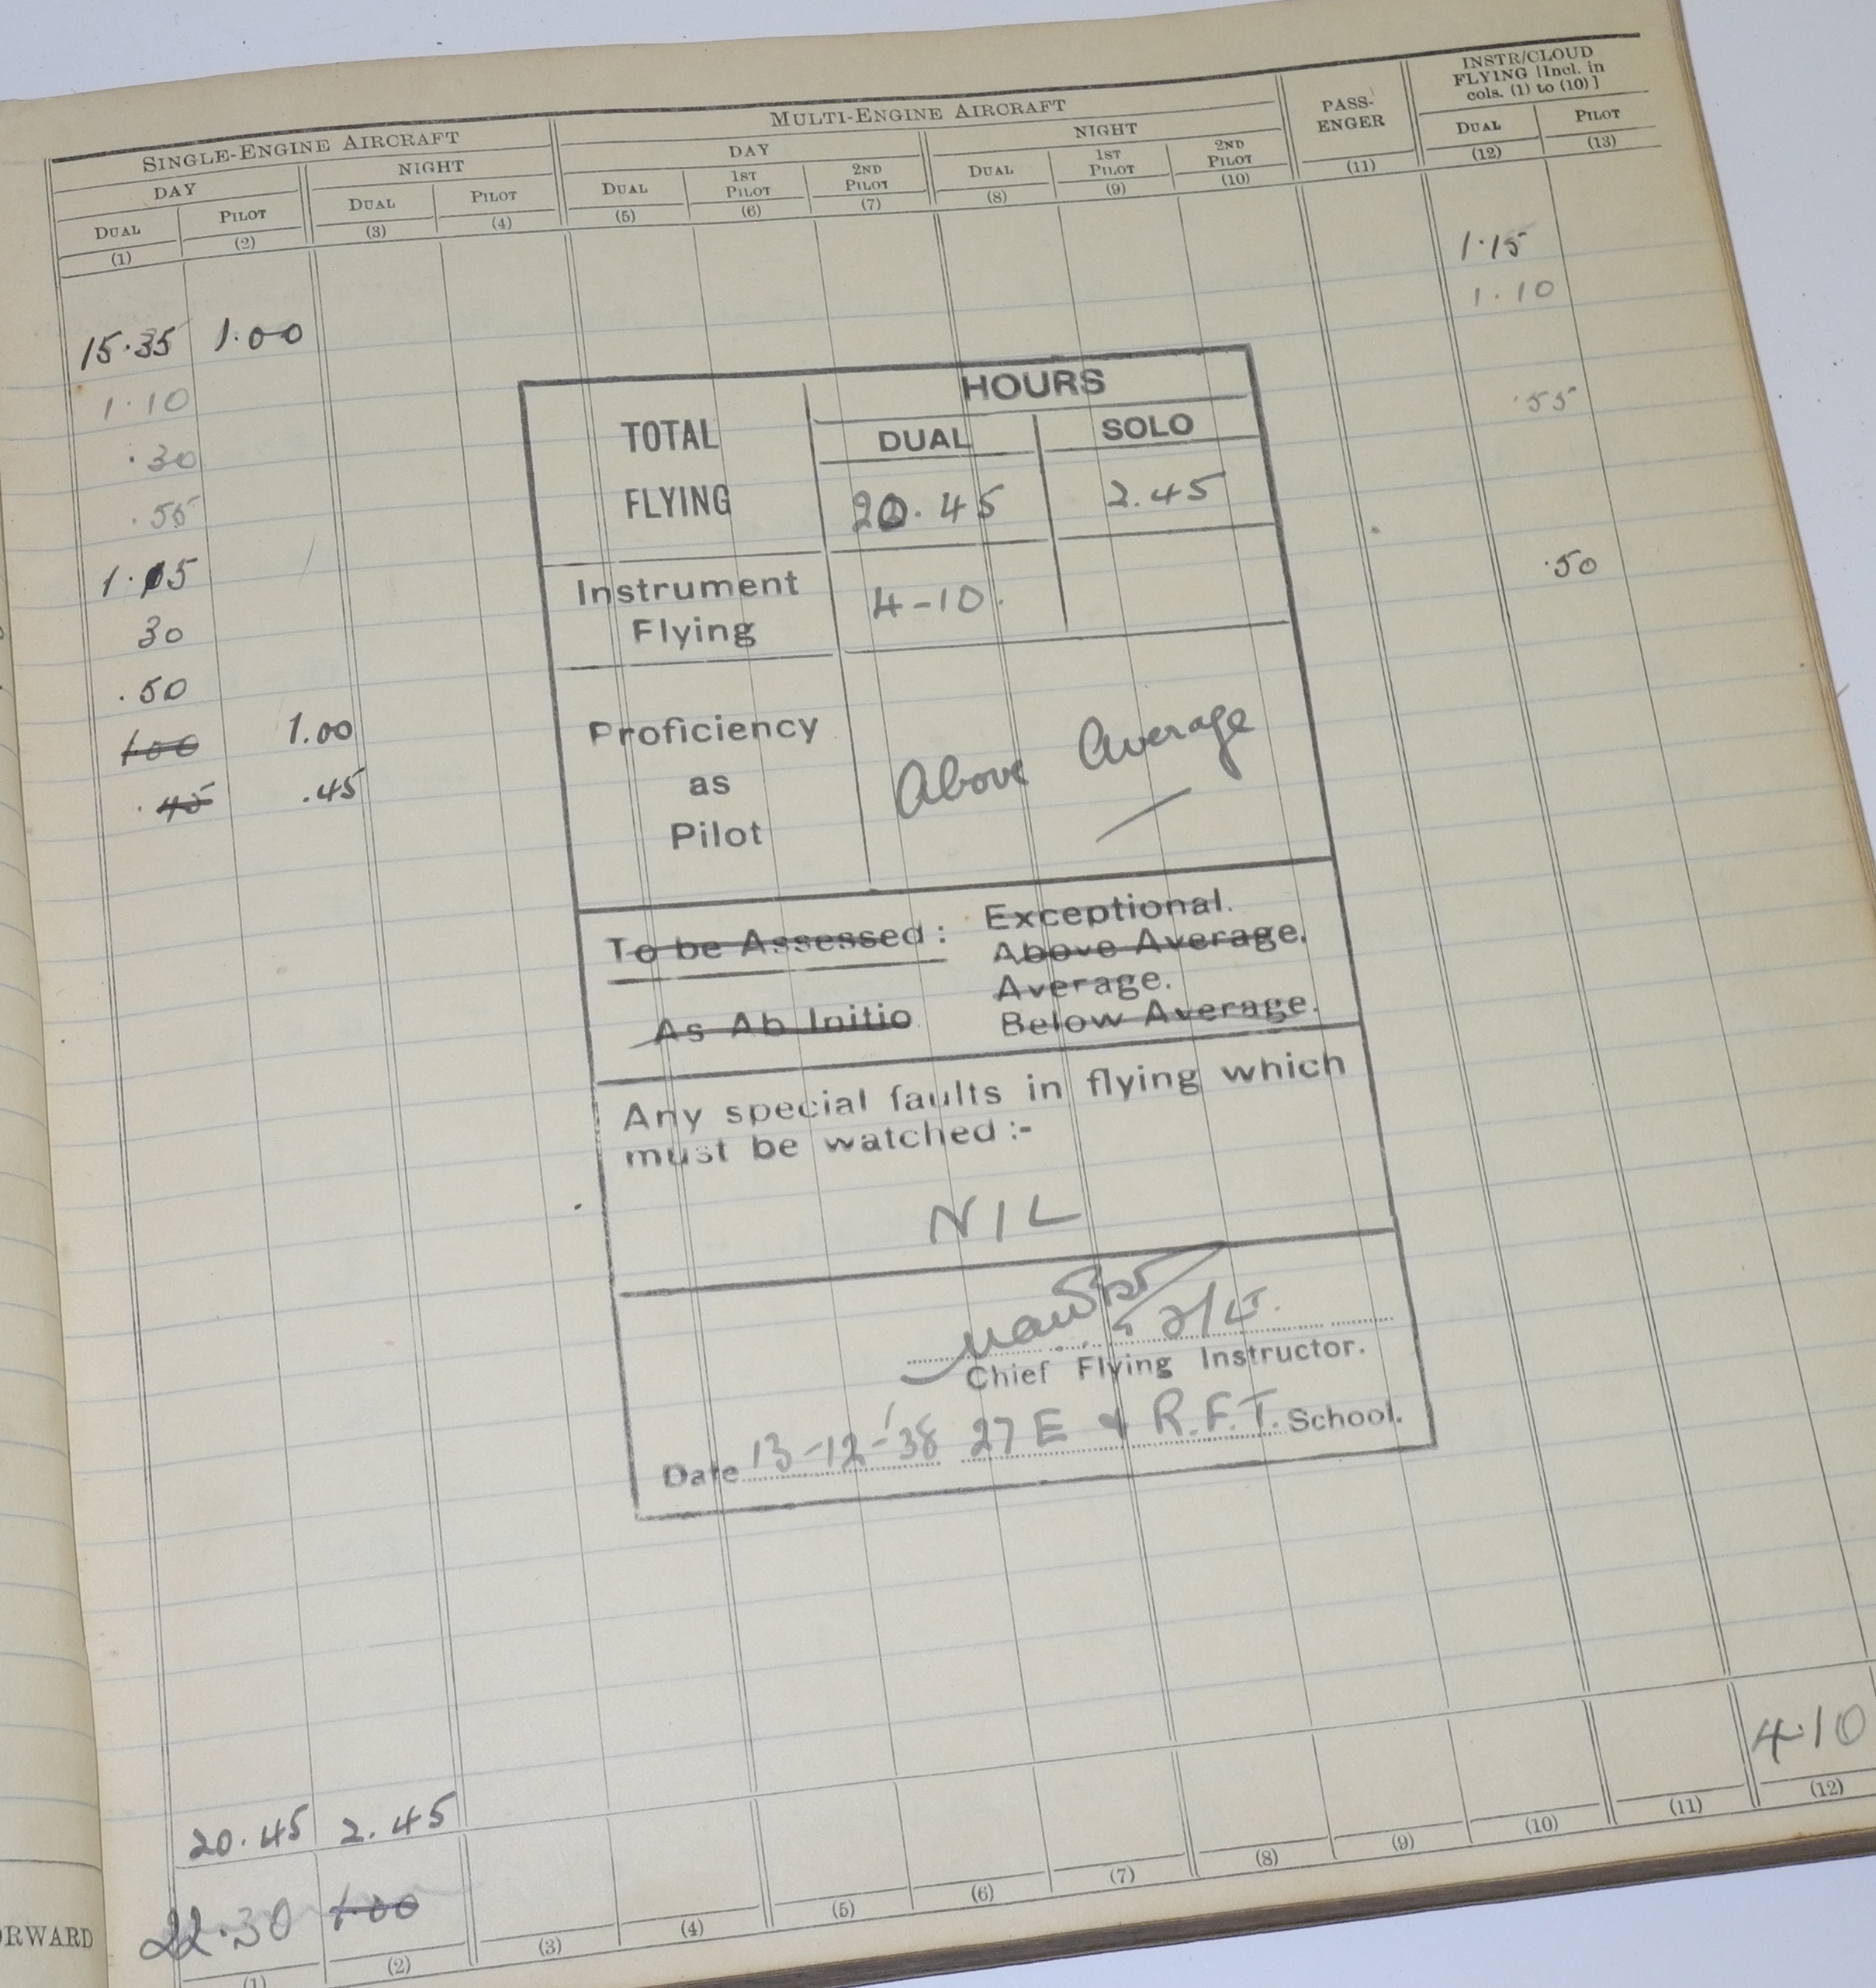 RAF Fighter Pilot Log Book battle of Britain 229 Squadron